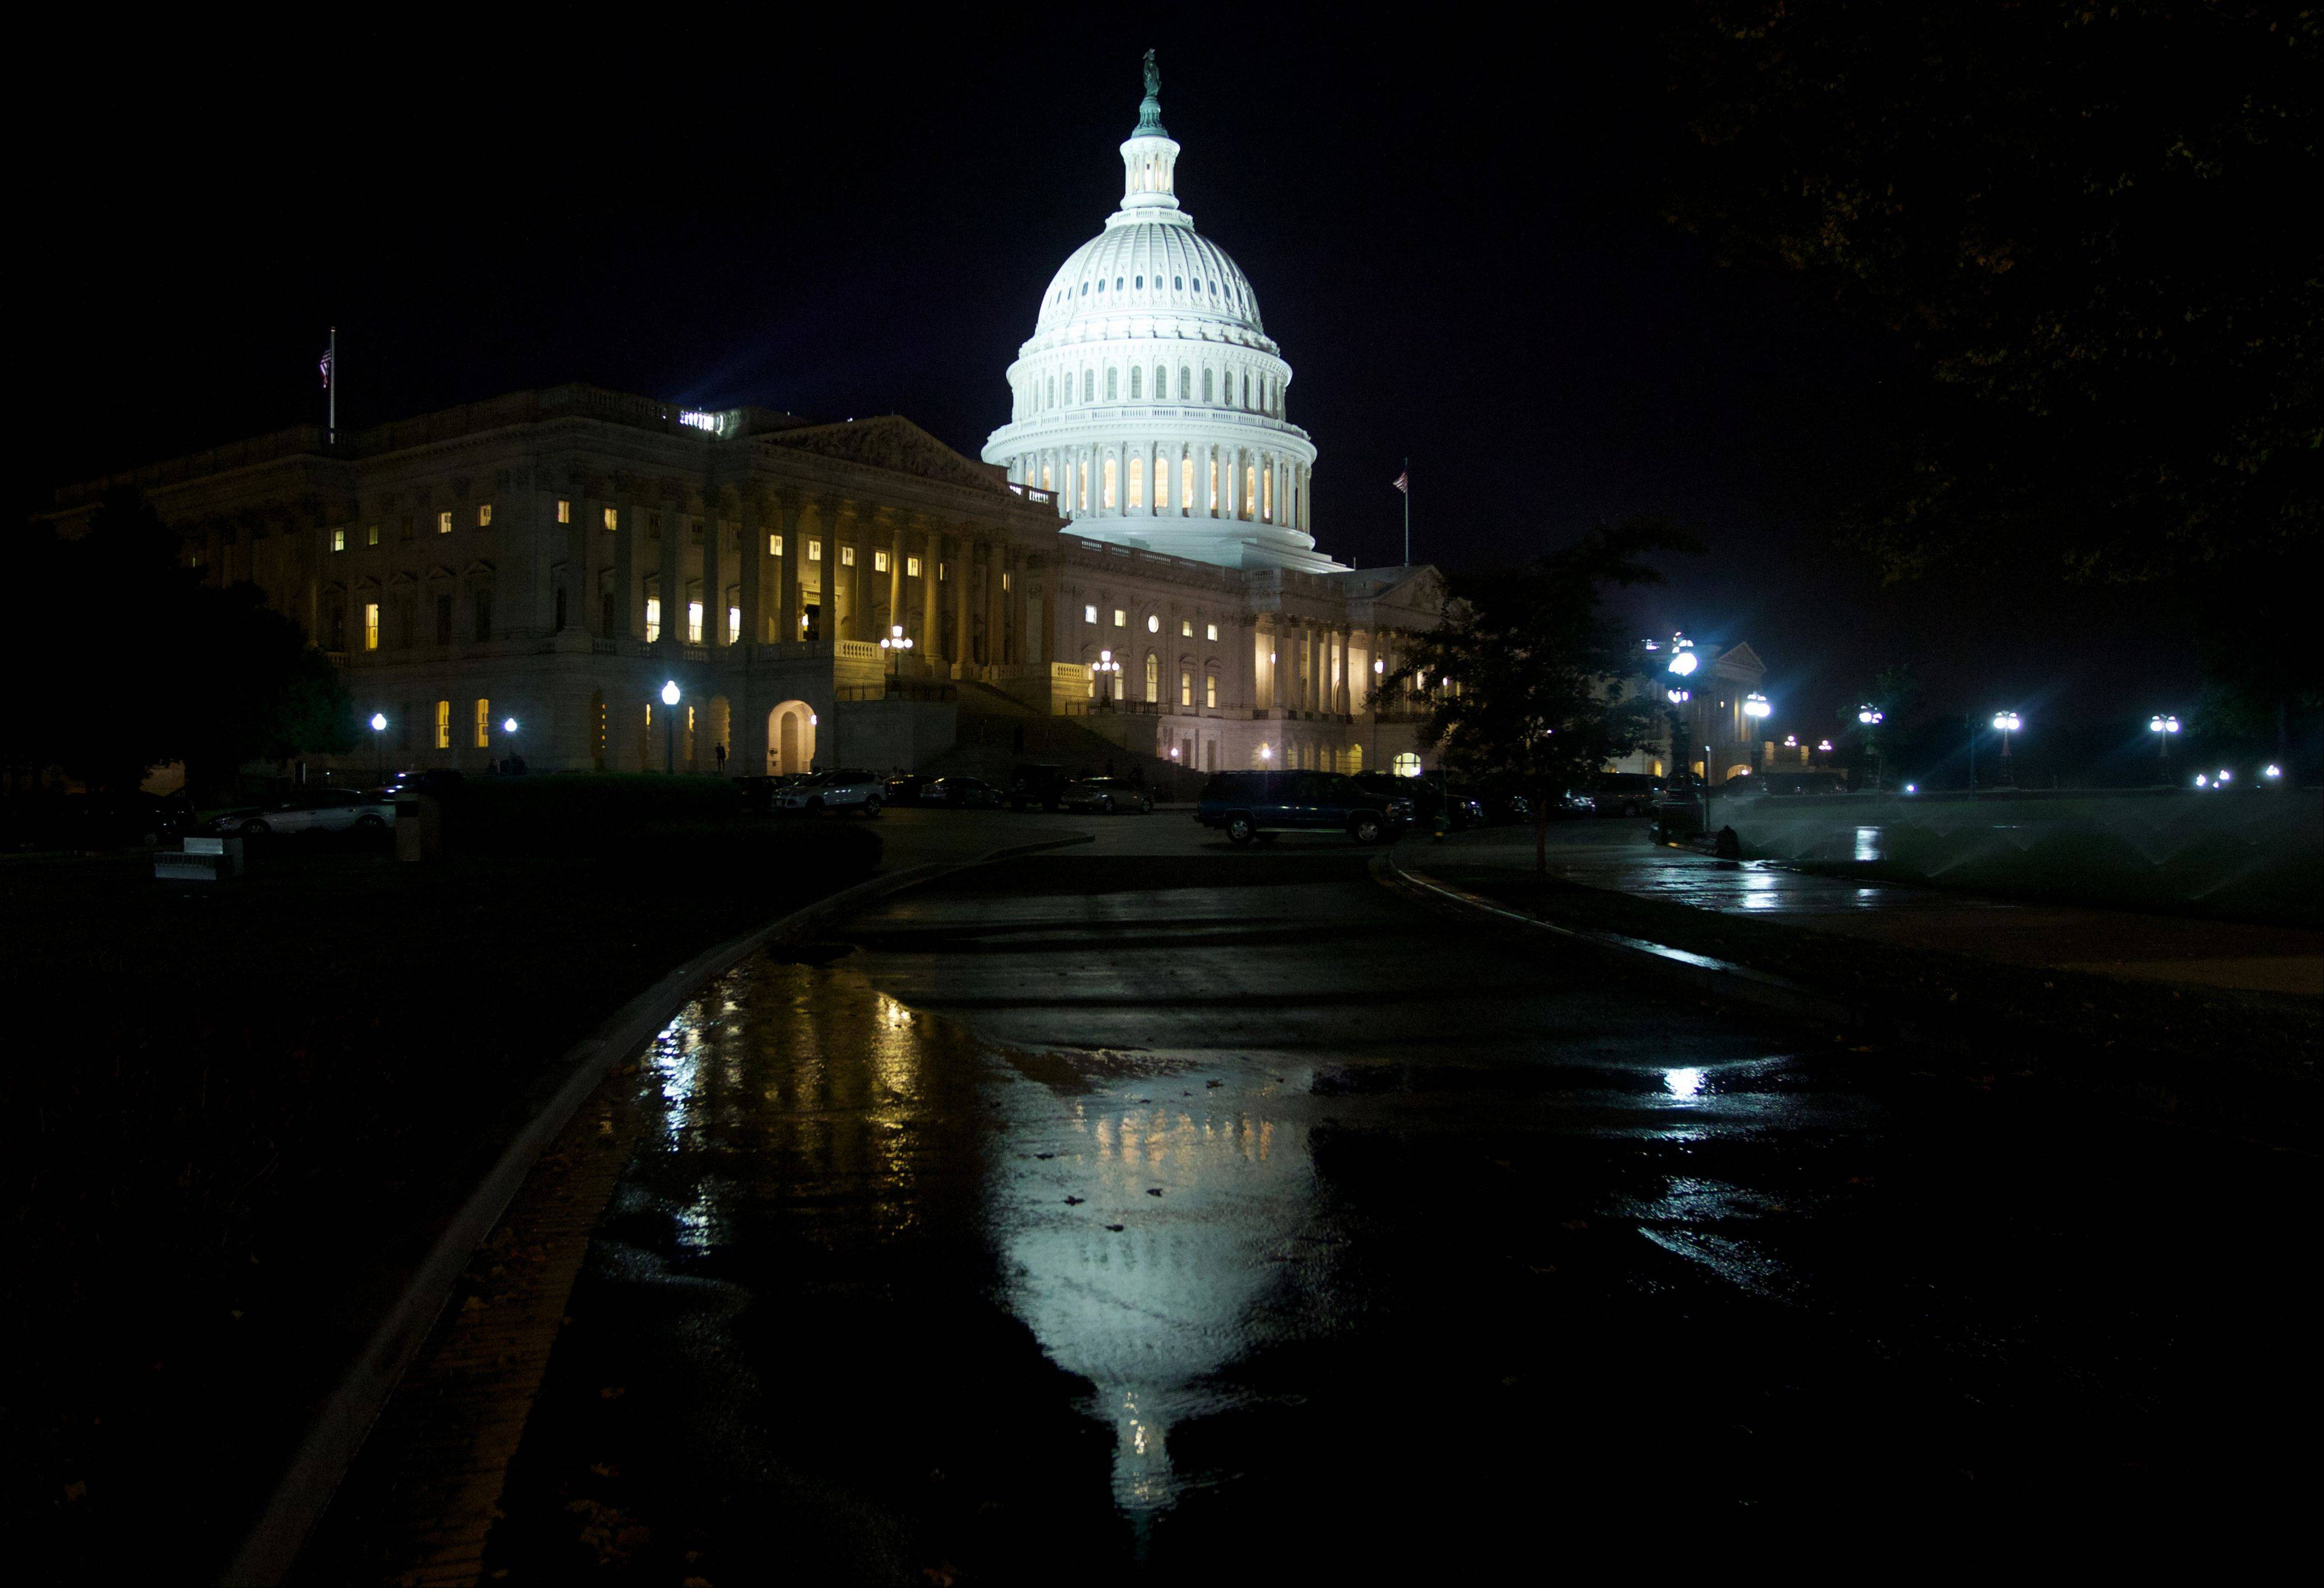 Who'll blink? Democrats, GOP in shutdown staredown